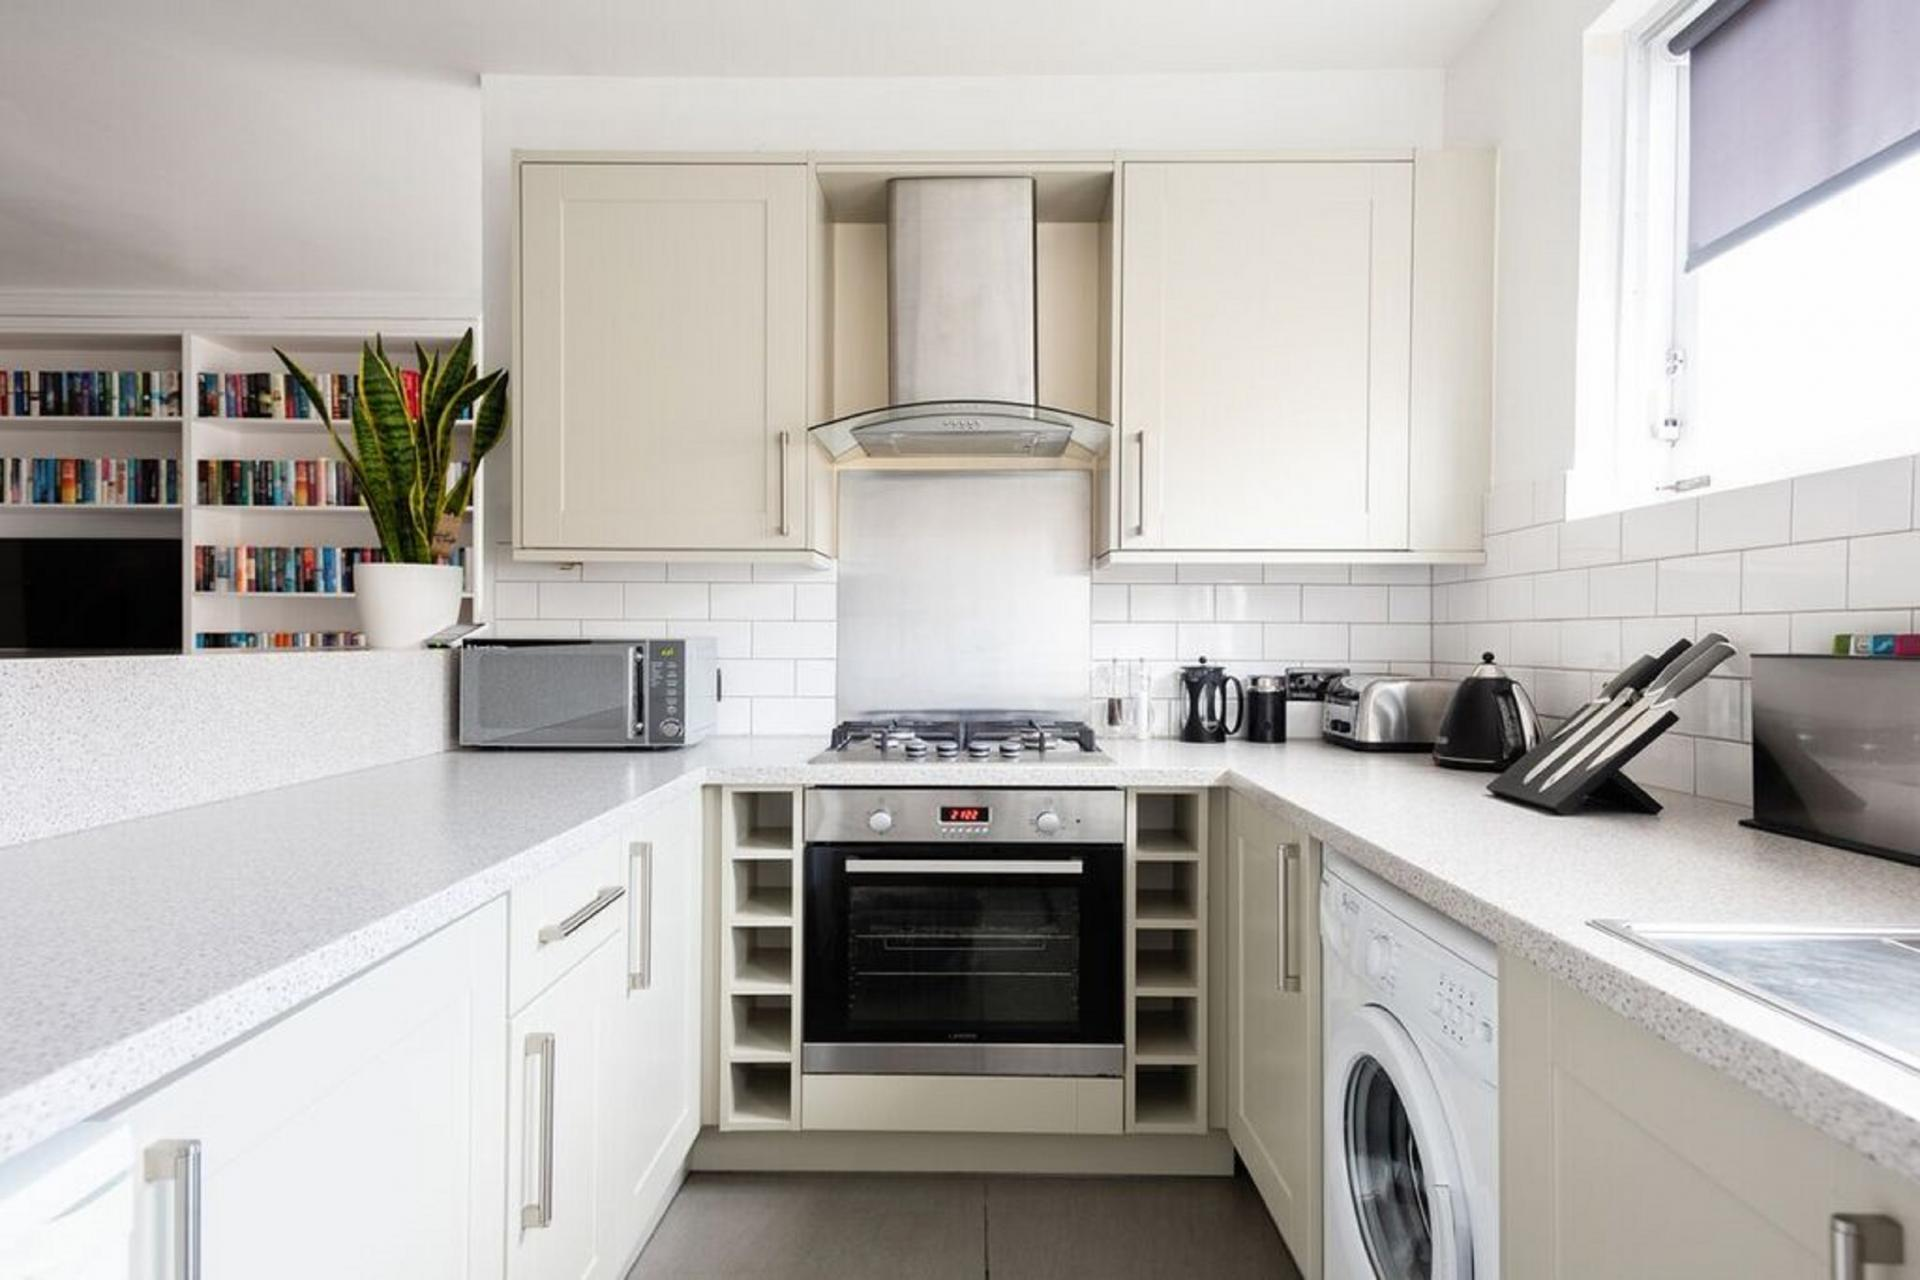 Fully equipped kitchen at The Paddington Mews, Paddington, London - Citybase Apartments